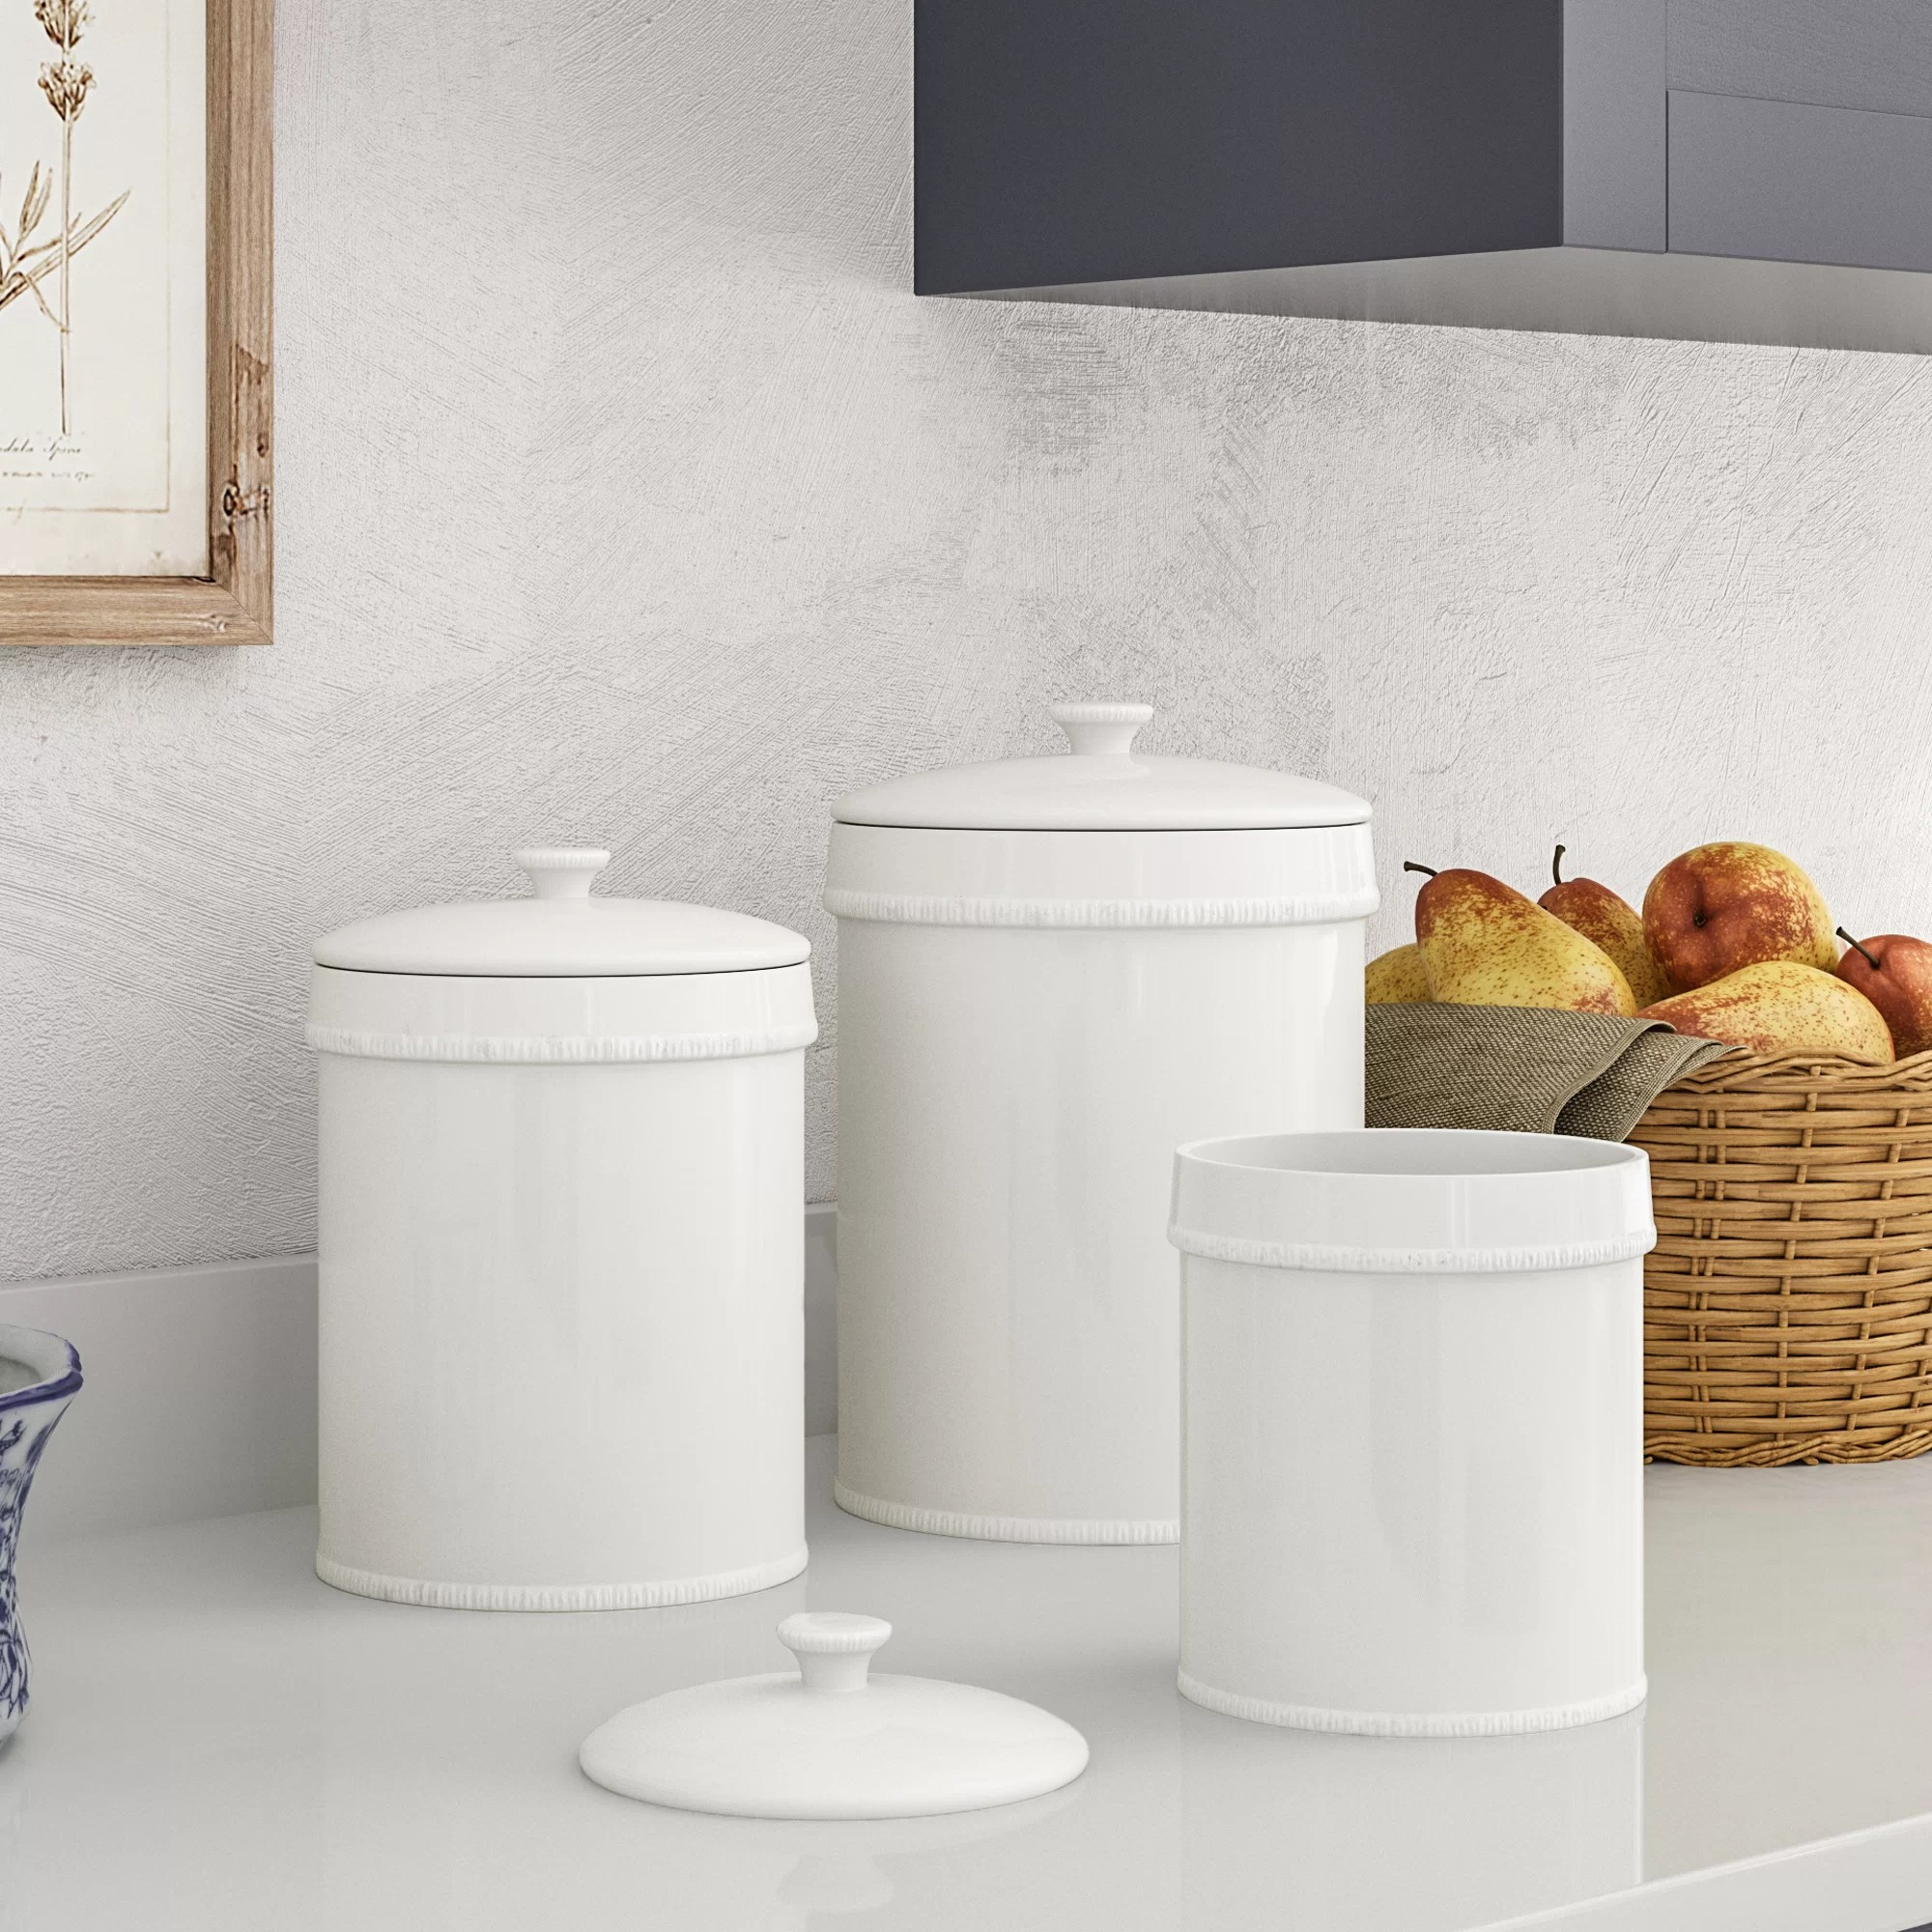 3 piece kitchen set the orleans island birch lane heritage bianca canister reviews